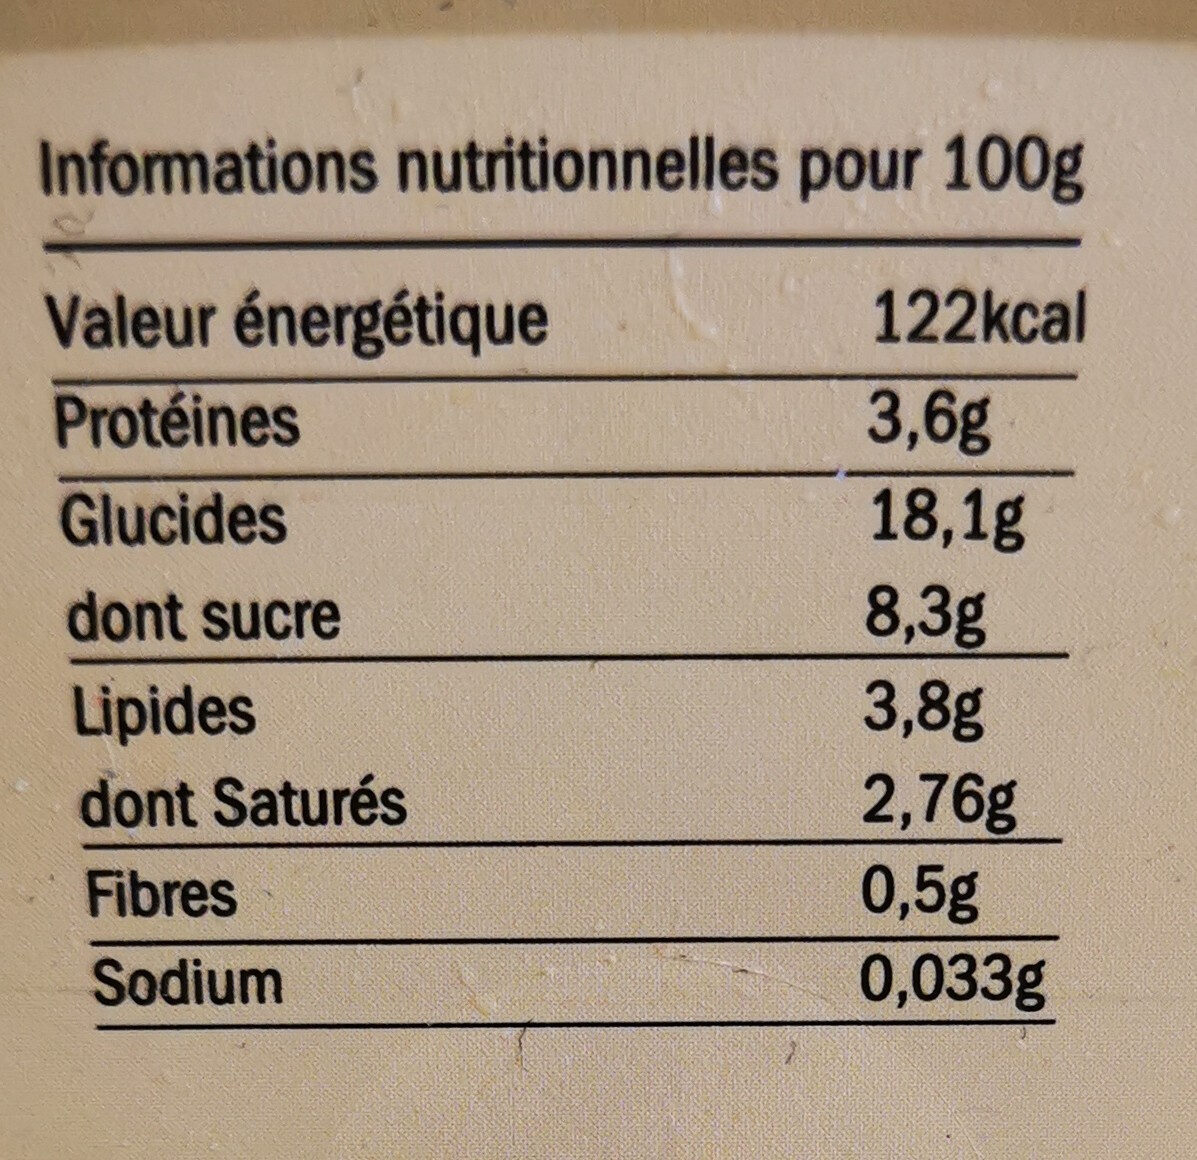 7830 gTeurgoule Cambremer - Nutrition facts